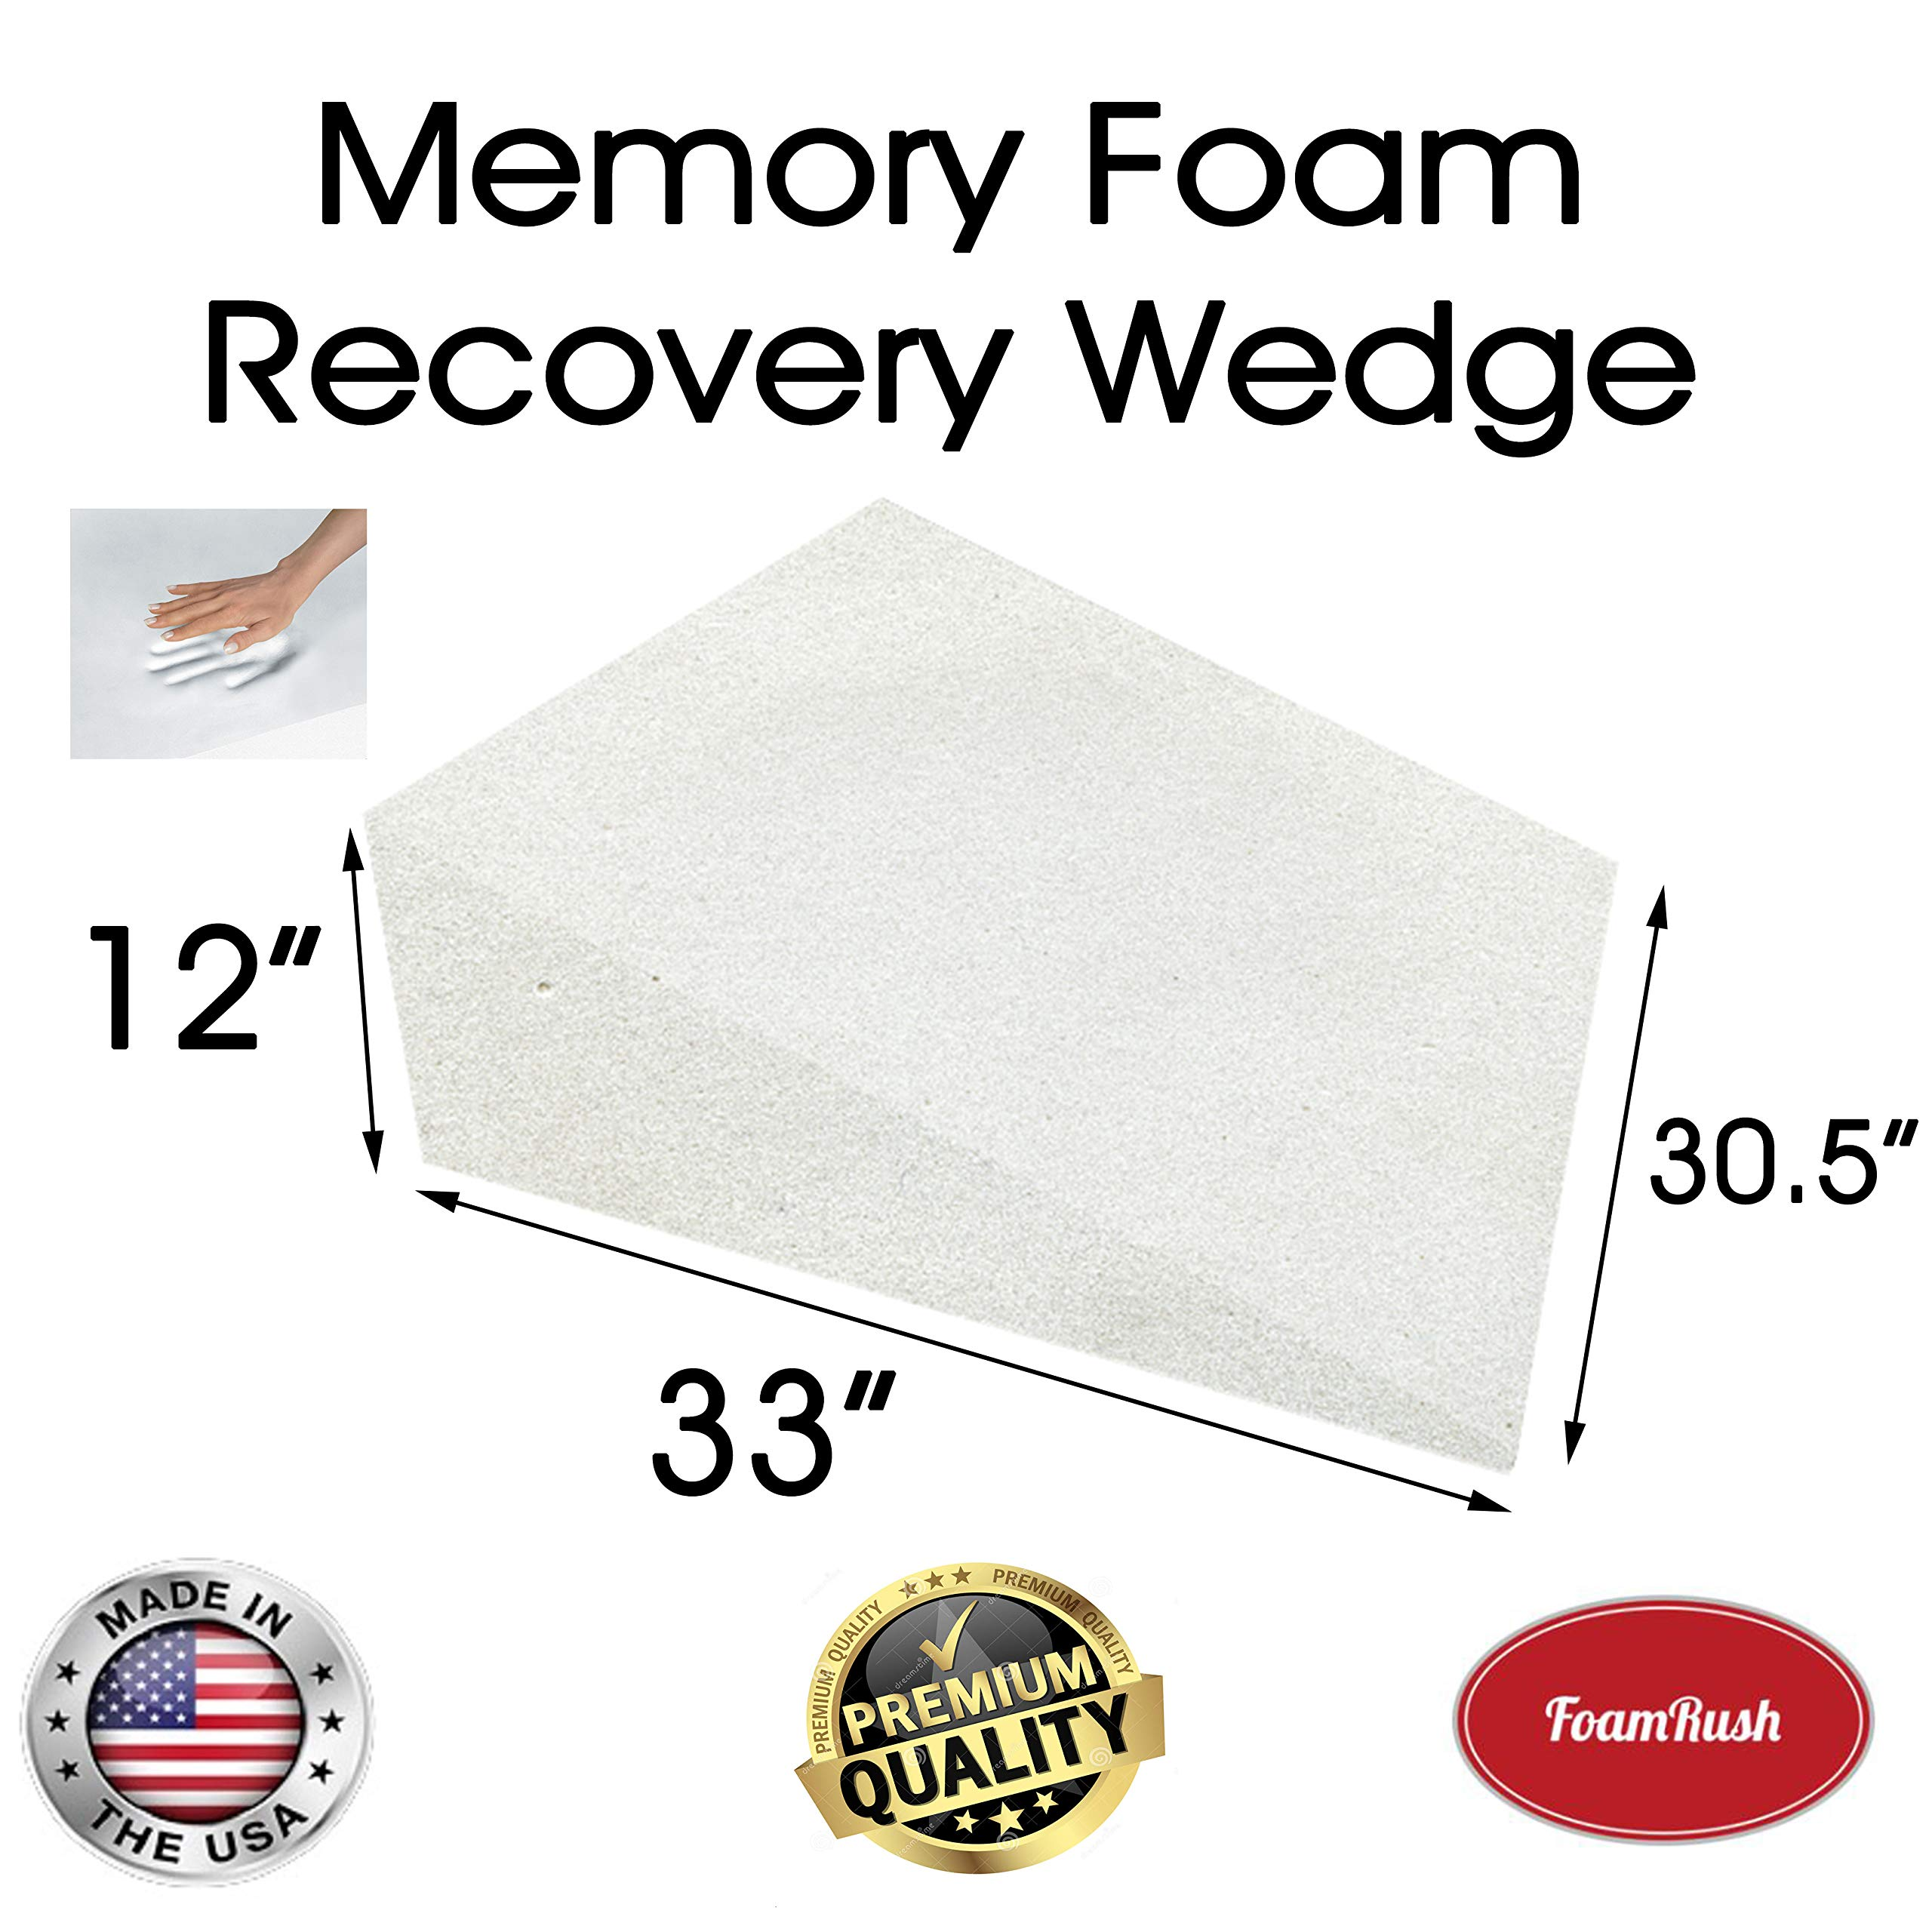 FoamRush 12'' H x 33'' L x 30.5'' W Premium Quality Therapeautic Memory Foam Bed Wedge Cushion Replacement Best for Sleeping, Reading, Rest or Elevation (Relives Acid Reflux, Snoring & Back Pain) by FoamRush